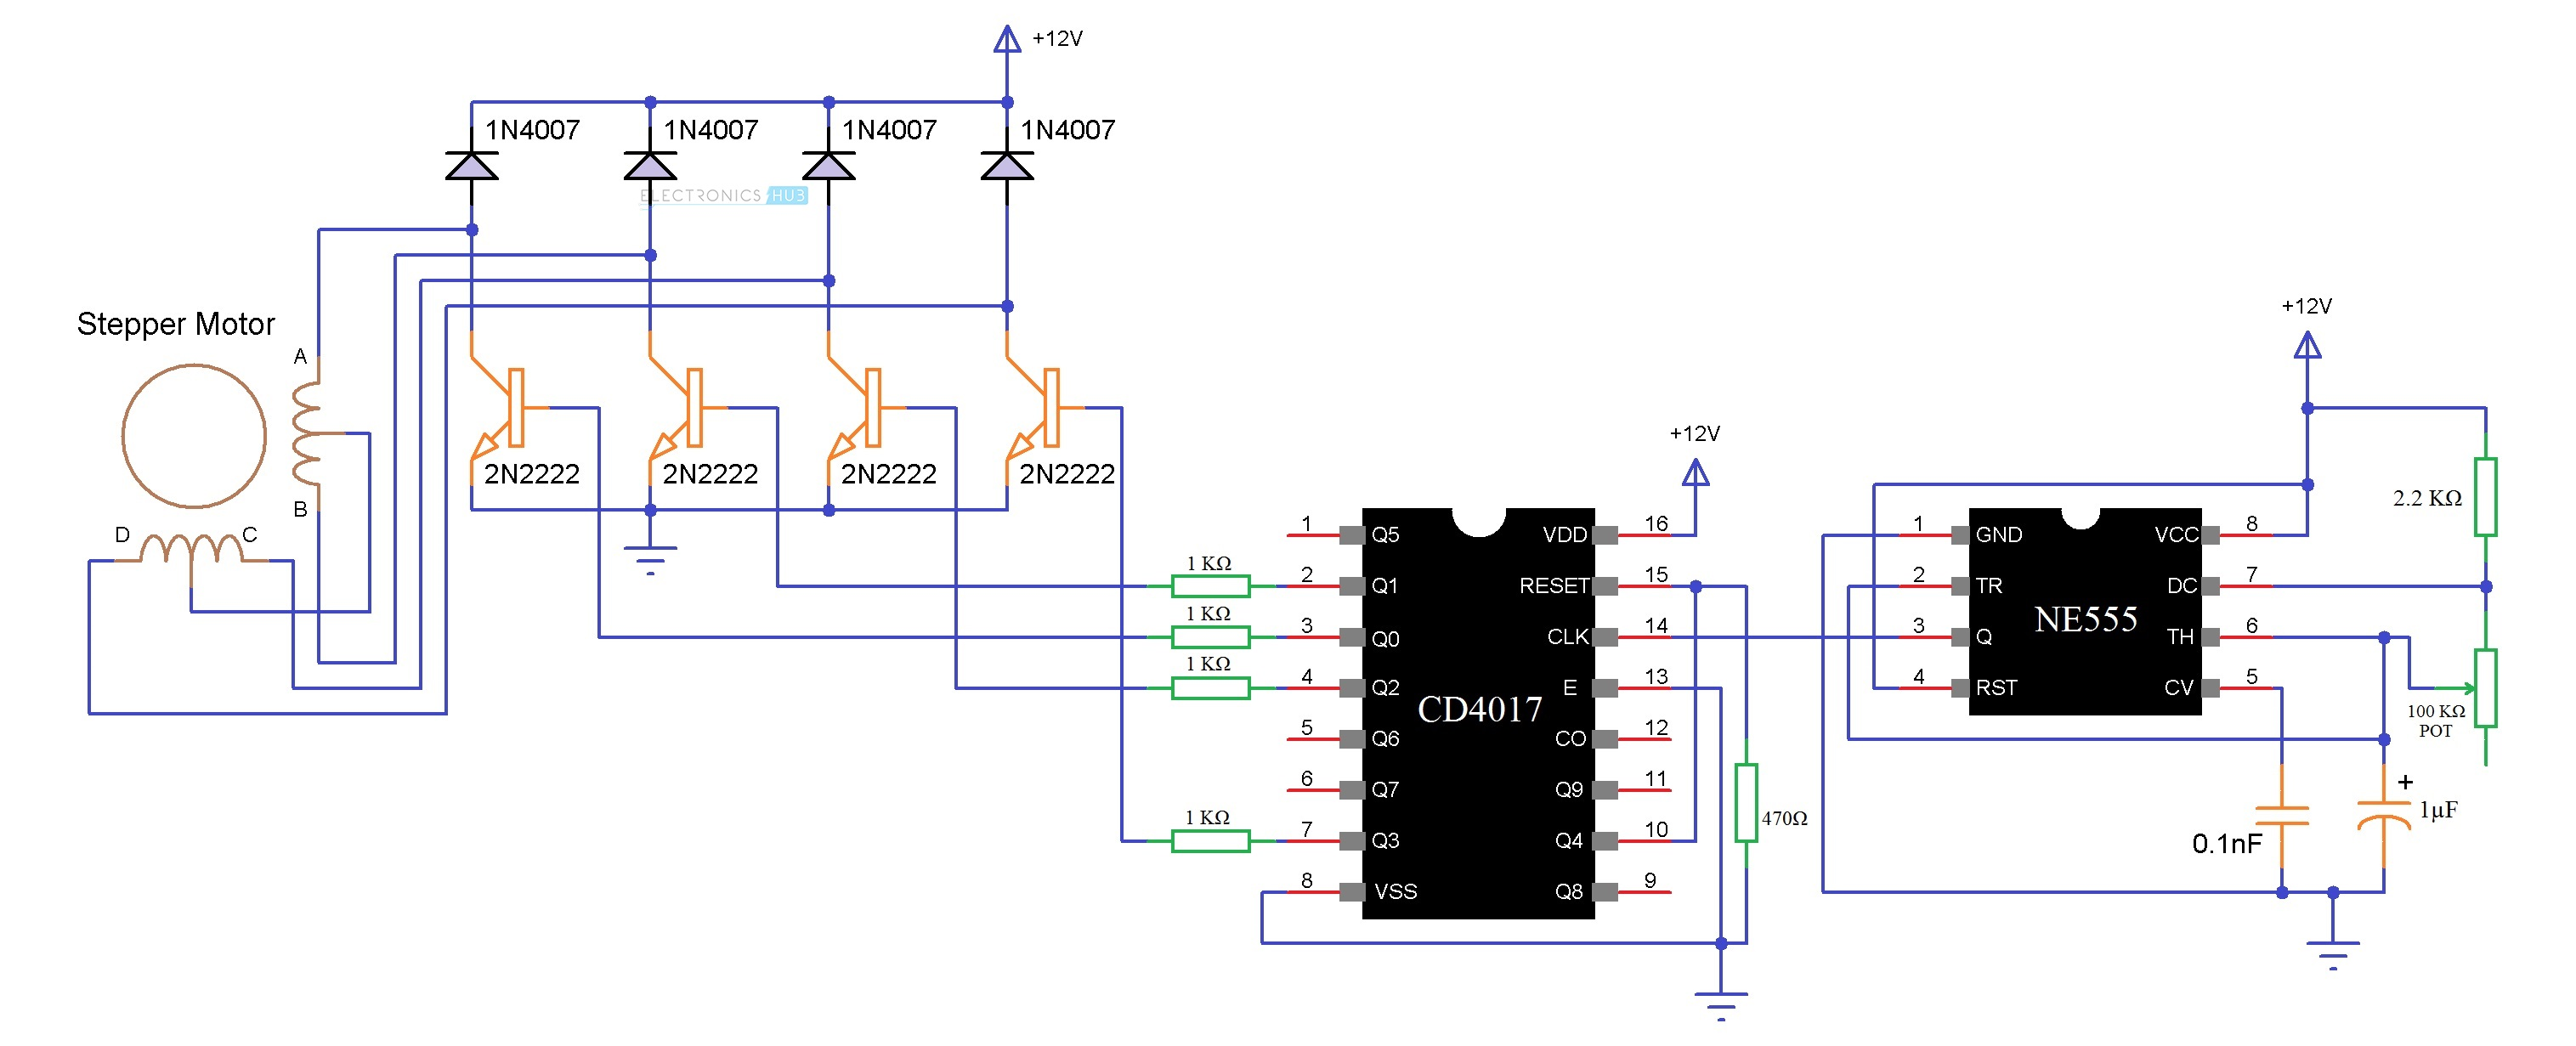 Stepper Motor Driver Circuit In This Ne555 Ic Is Used As Astable Multivibrator Diagram Of